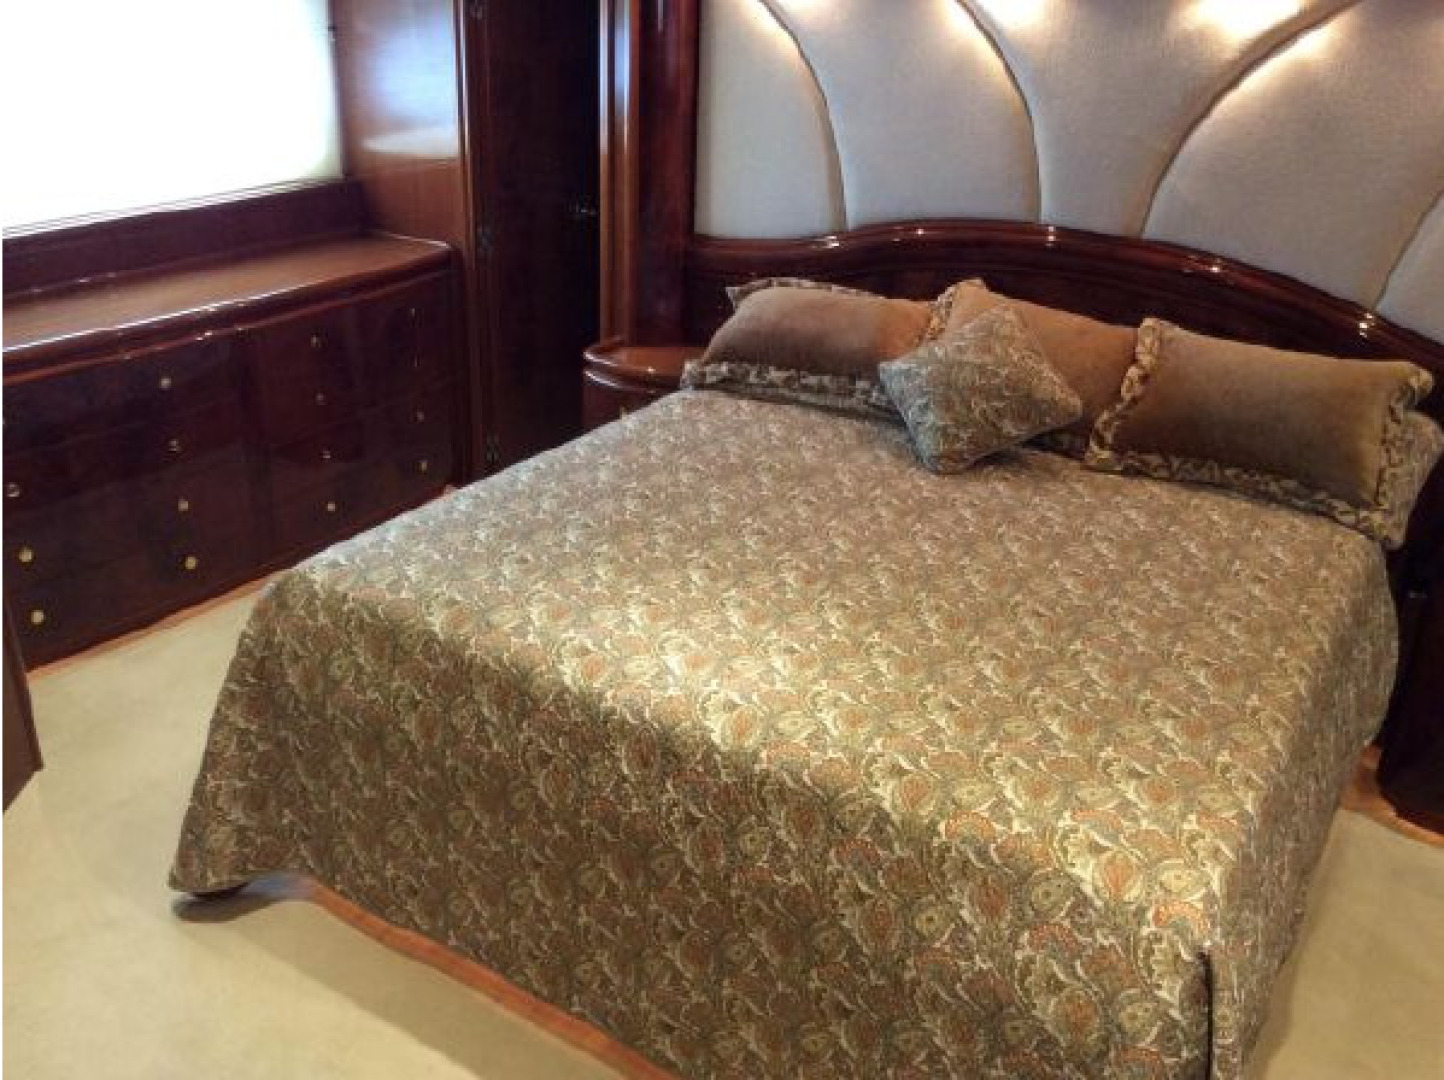 Tarrab-Tri Deck Motor yacht 1990 -Fort Lauderdale-Florida-United States-1551620 | Thumbnail